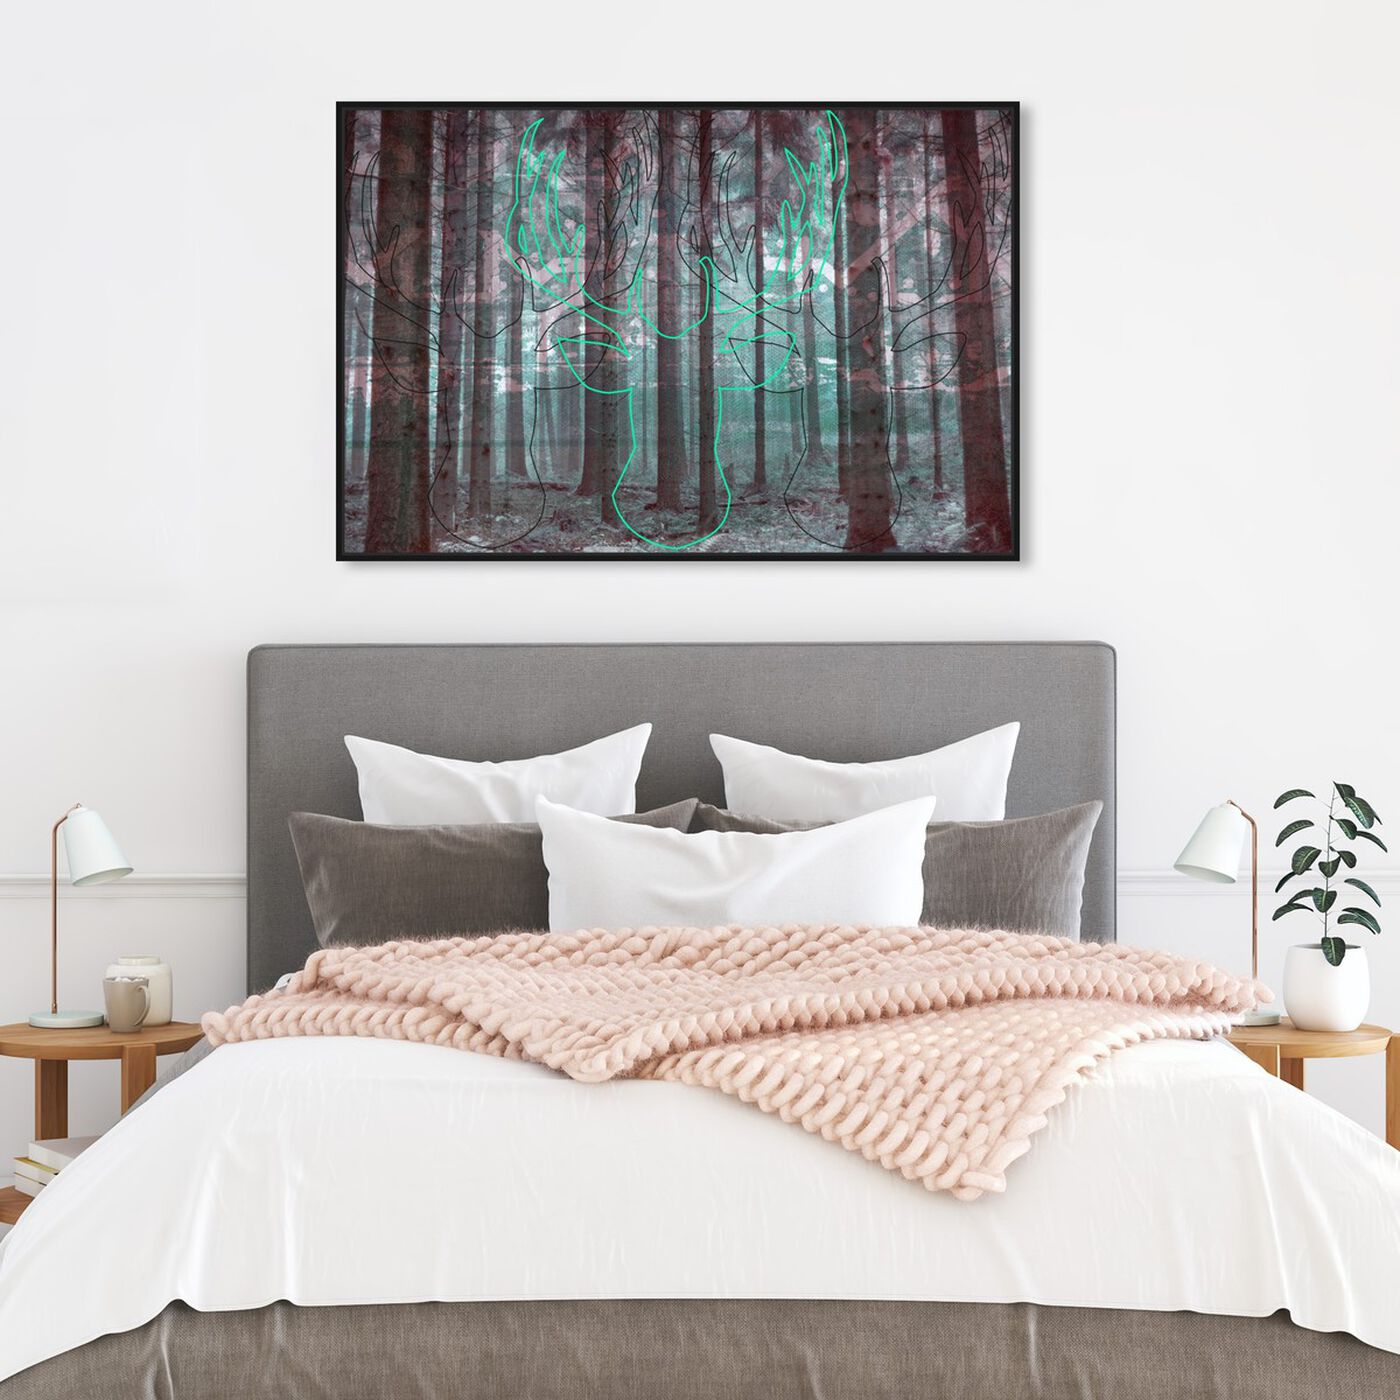 Hanging view of Oh My Deer! featuring nature and landscape and forest landscapes art.